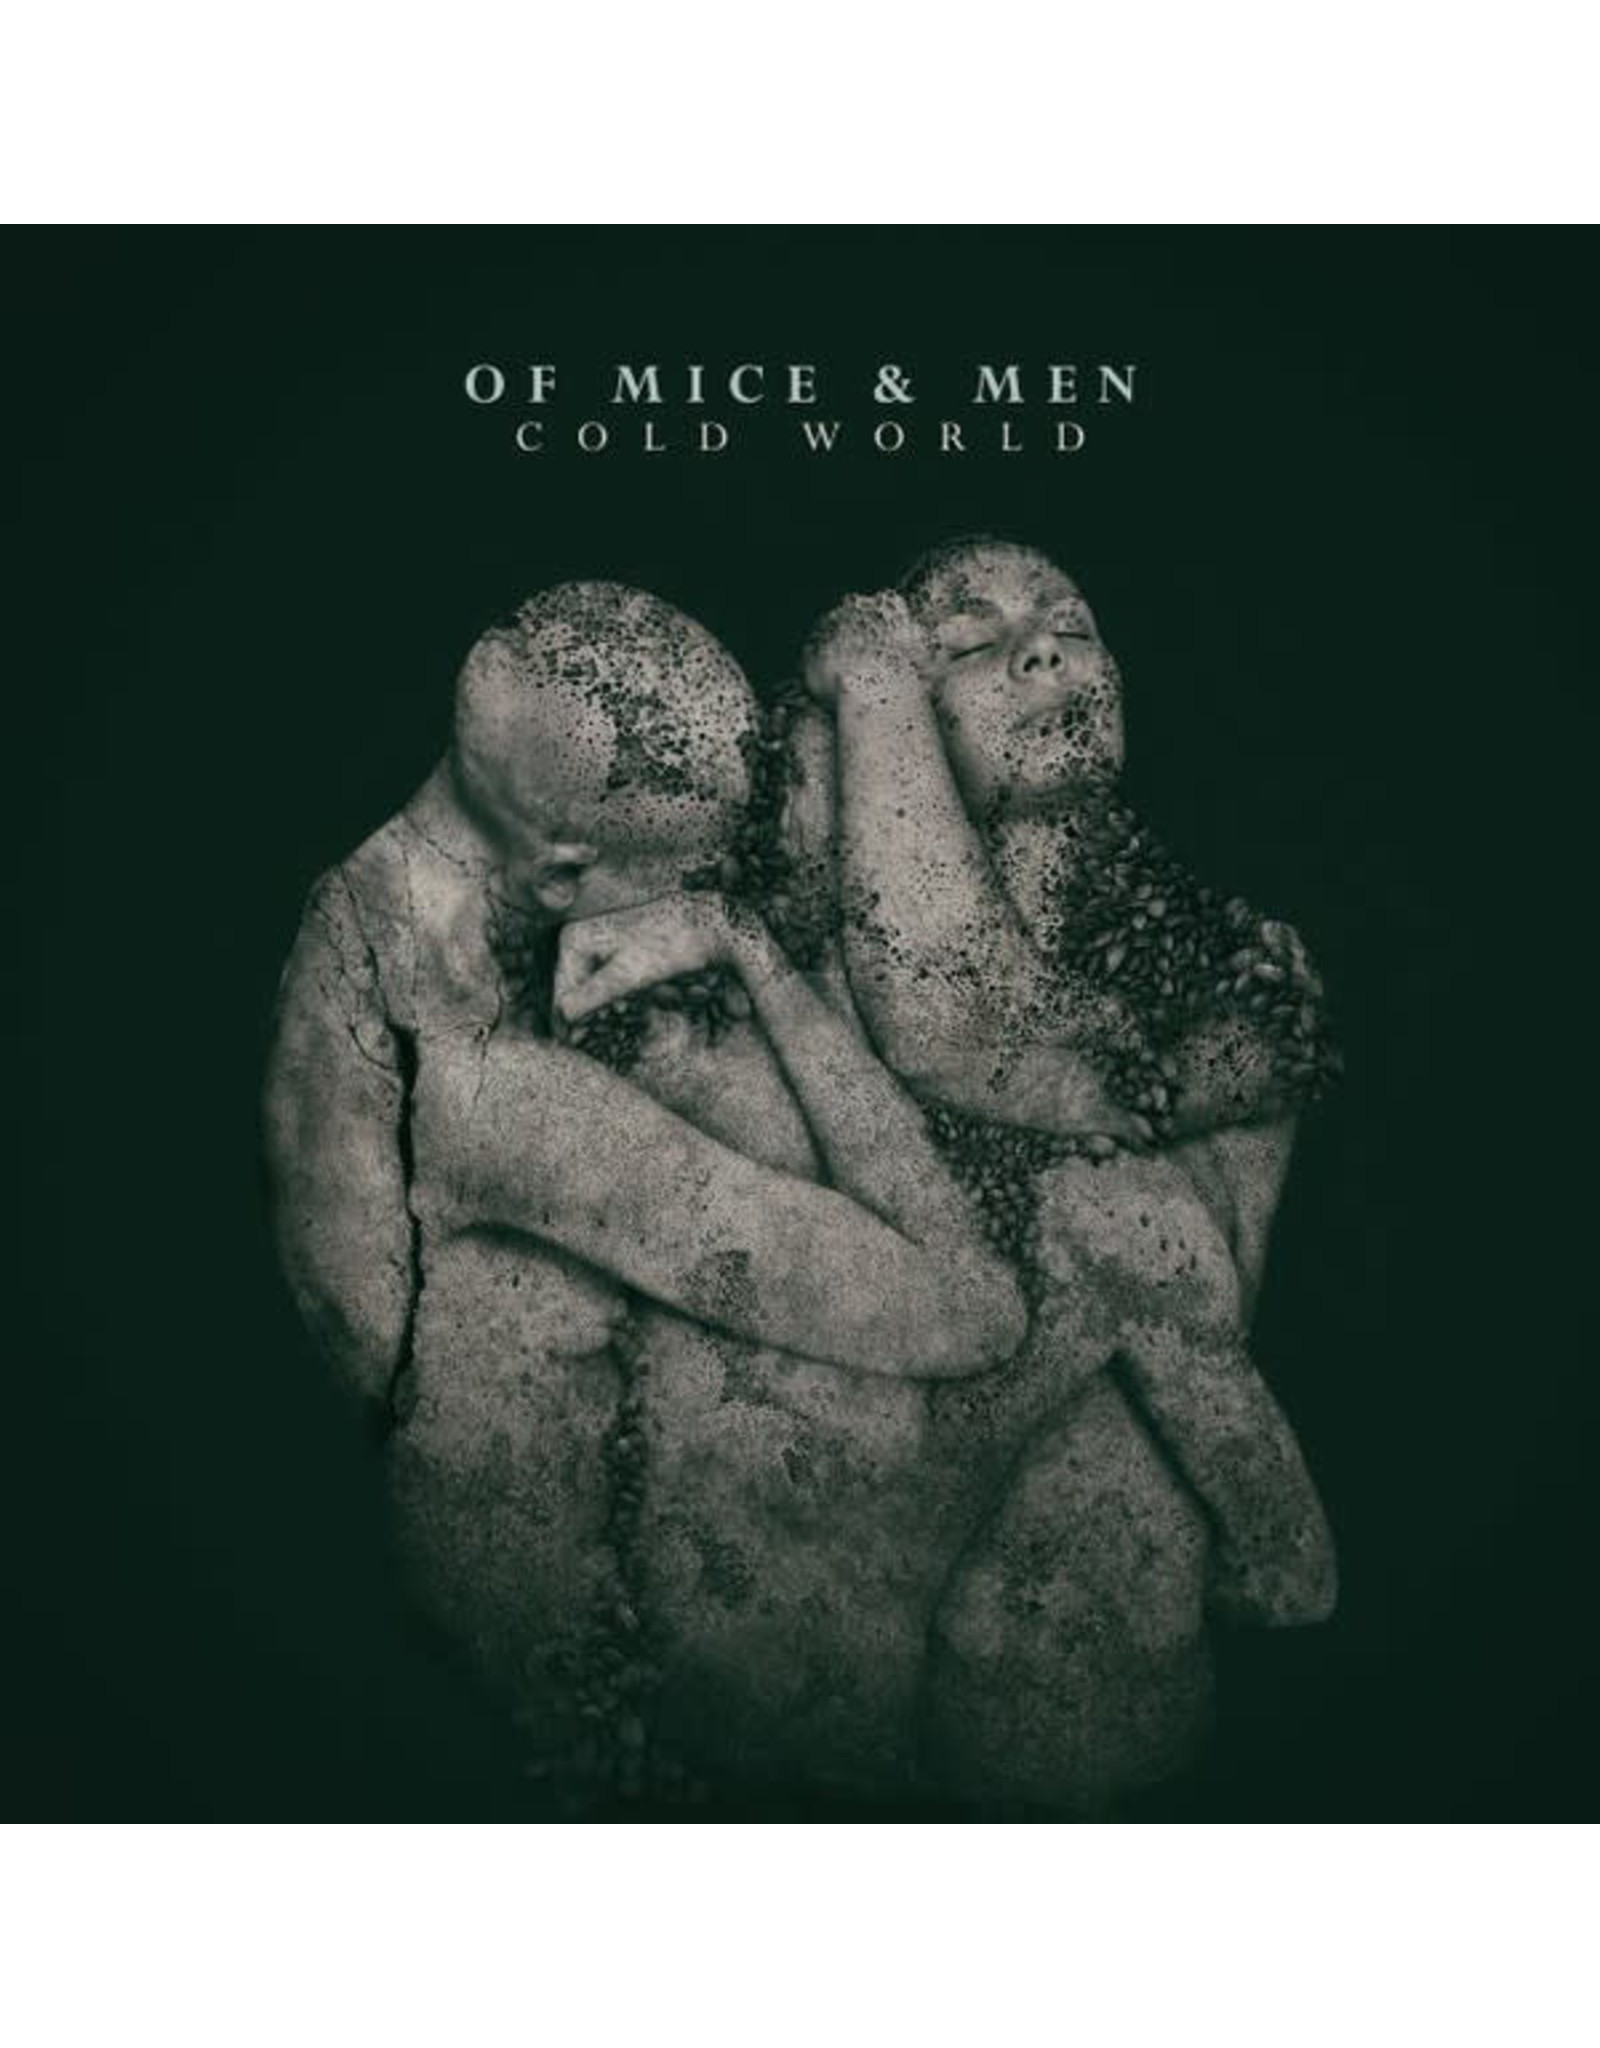 New Vinyl Of Mice And Men - Cold World LP